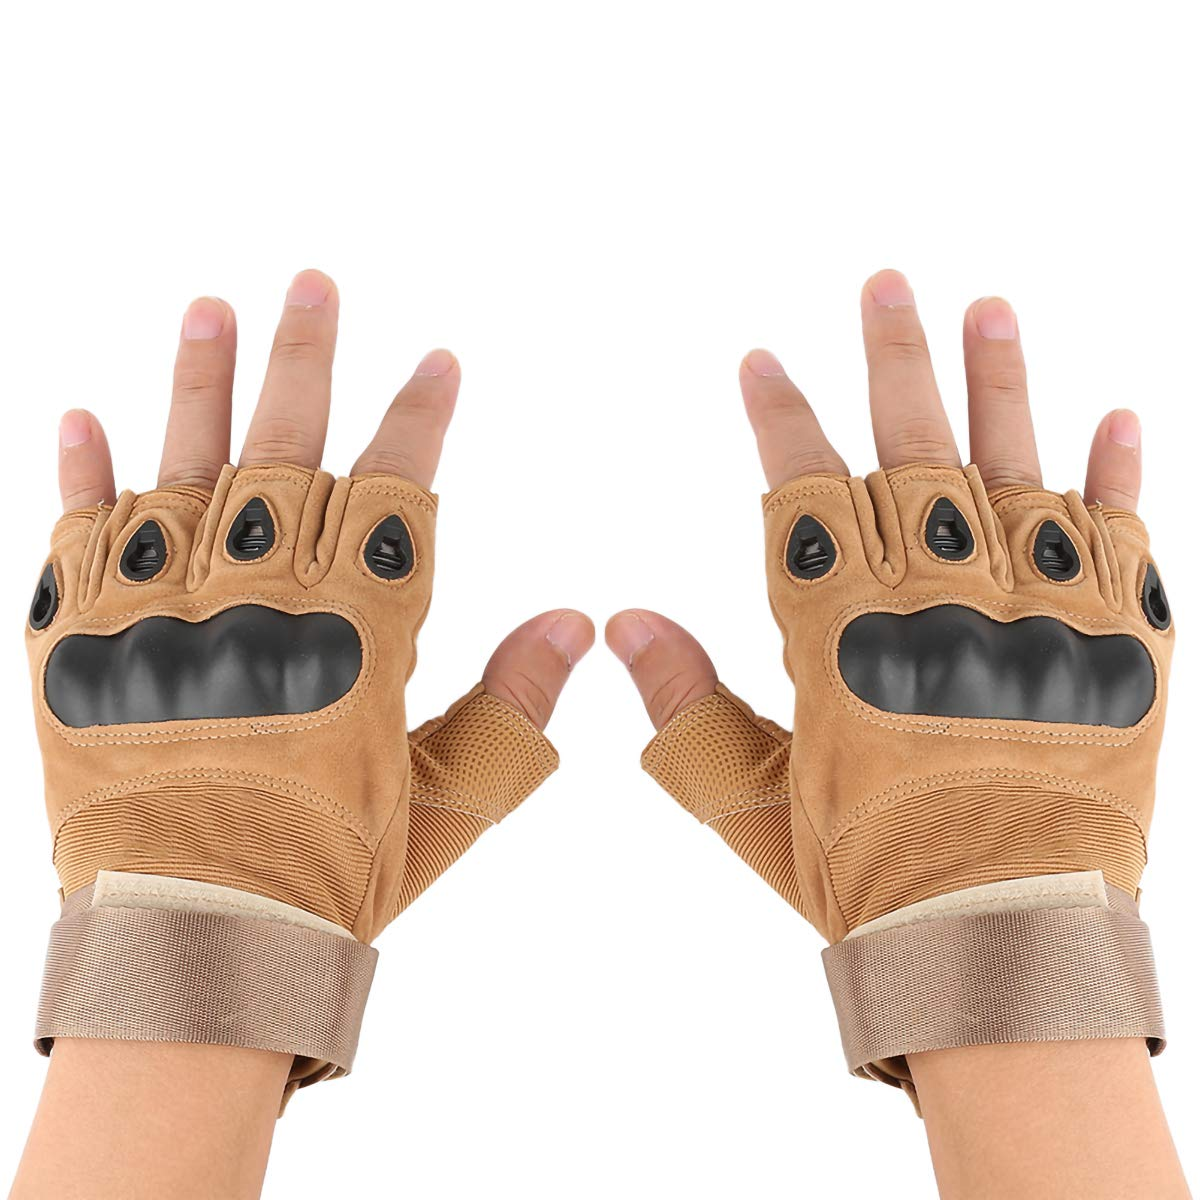 TAN Motorcycle Racing Hiking Hunting 2TRIDENTS Army Tactical Protective Half Finger Hard Knuckle Gloves for Shooting One Size Breathable Slip-Resistant Gloves